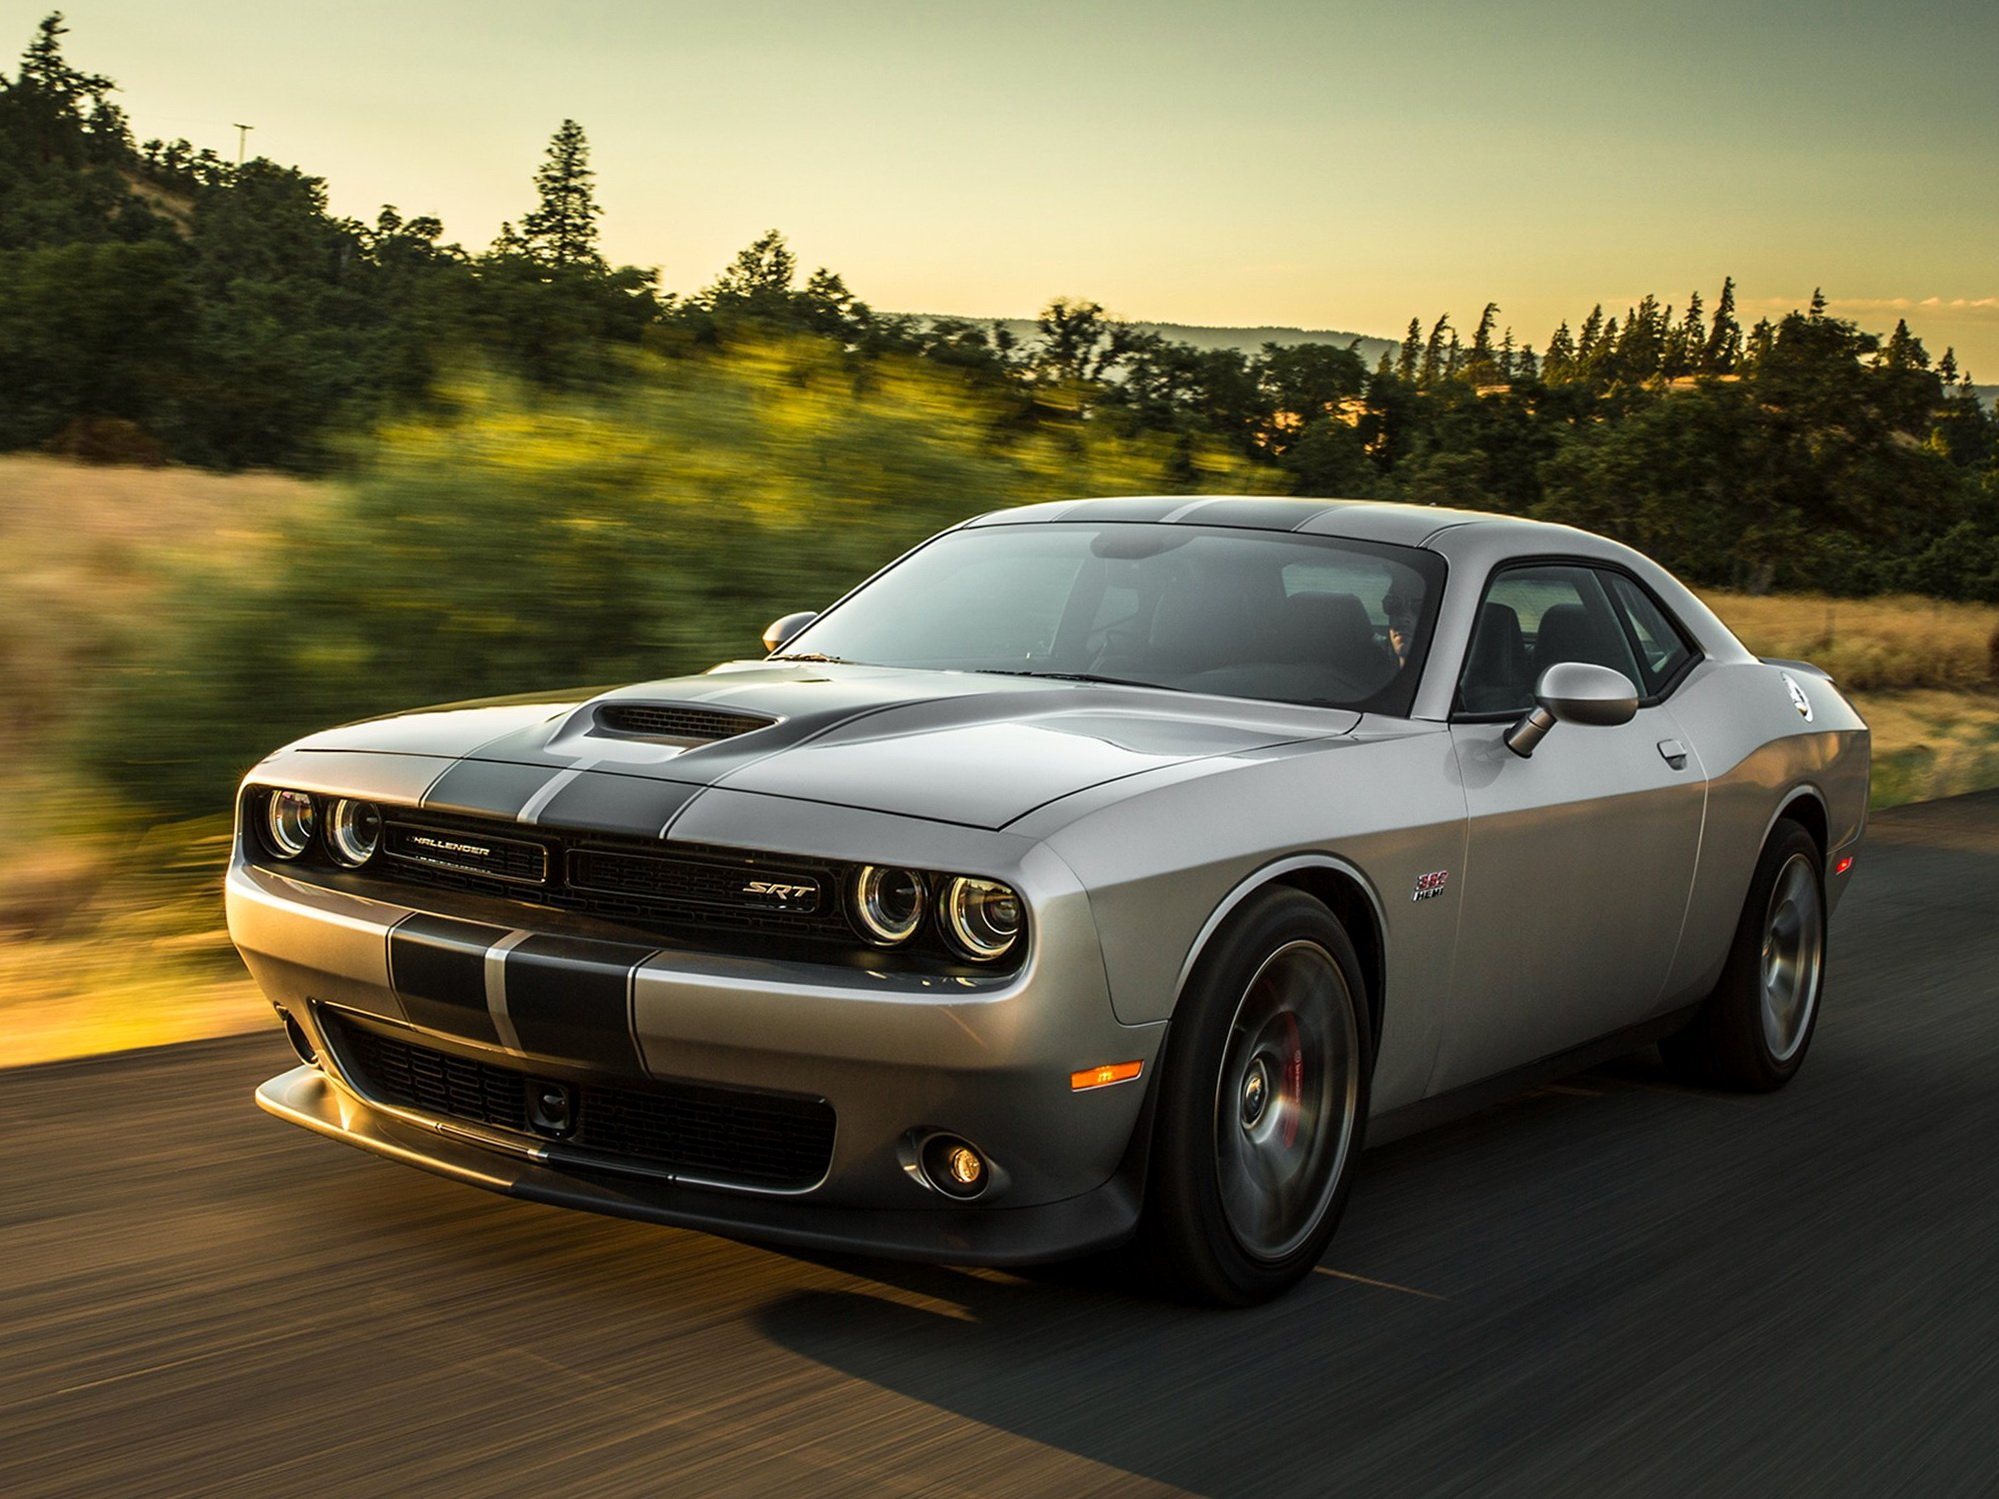 dodge challenger black hellcat wallpaper wallpapersafari. Black Bedroom Furniture Sets. Home Design Ideas